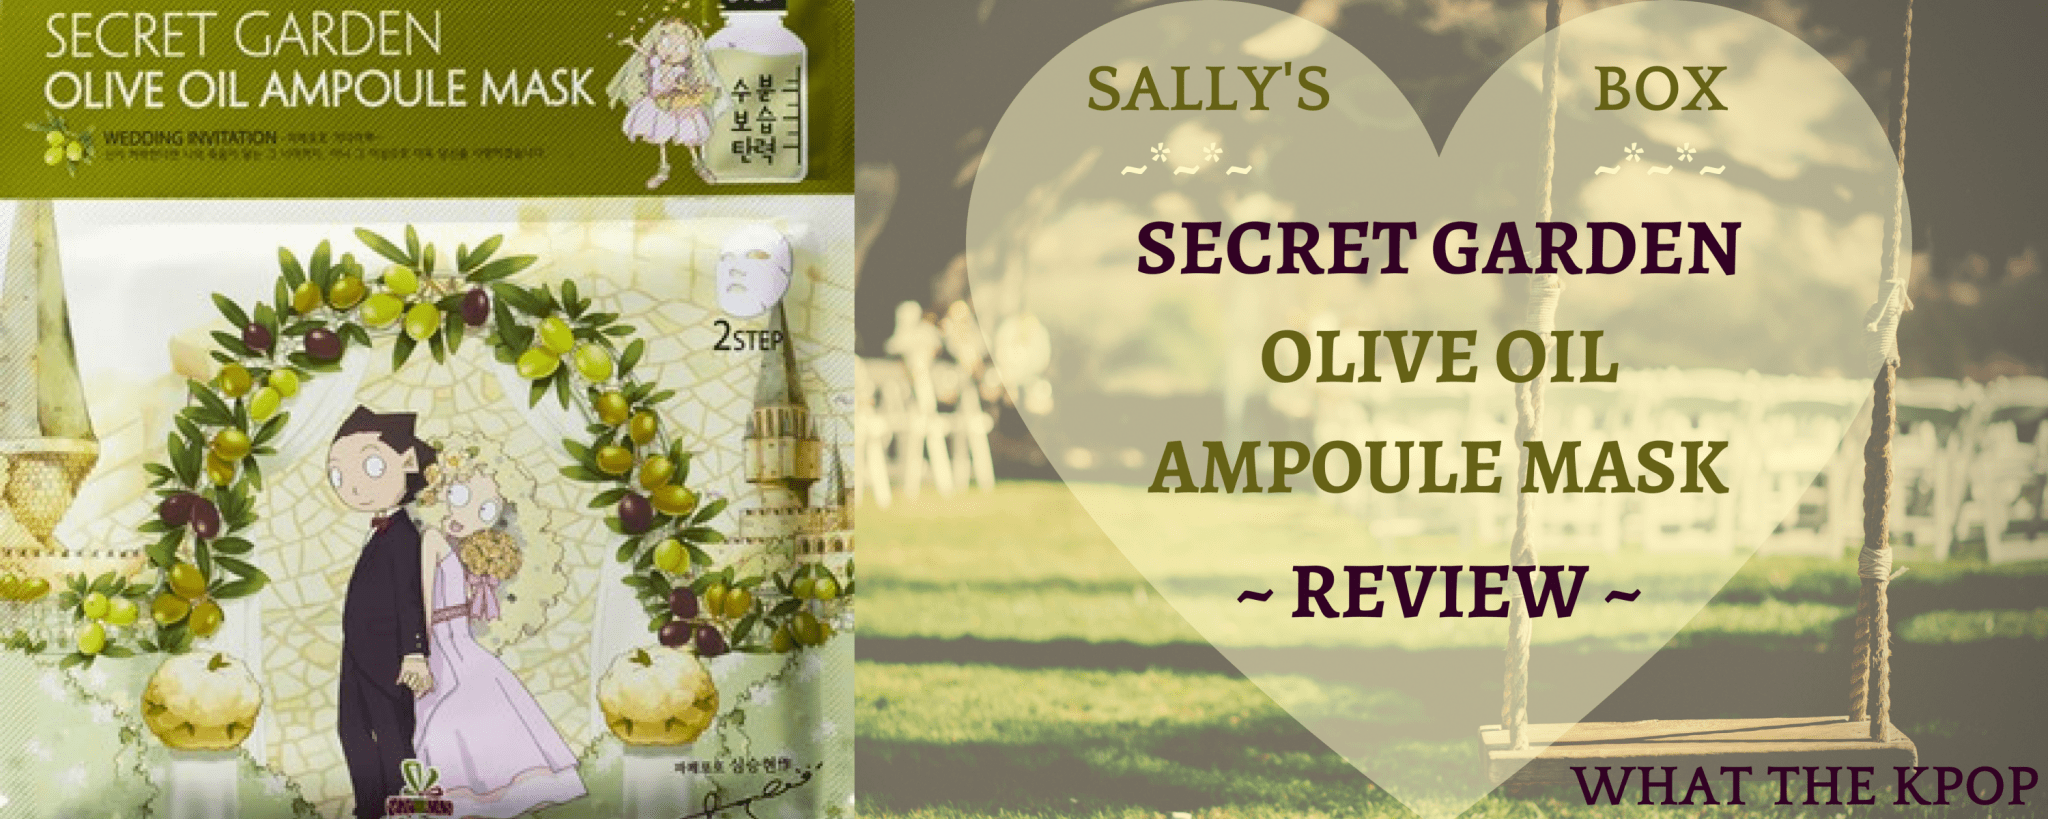 WTK REVIEW: Sally's Box Secret Garden Olive Oil Ampoule Mask